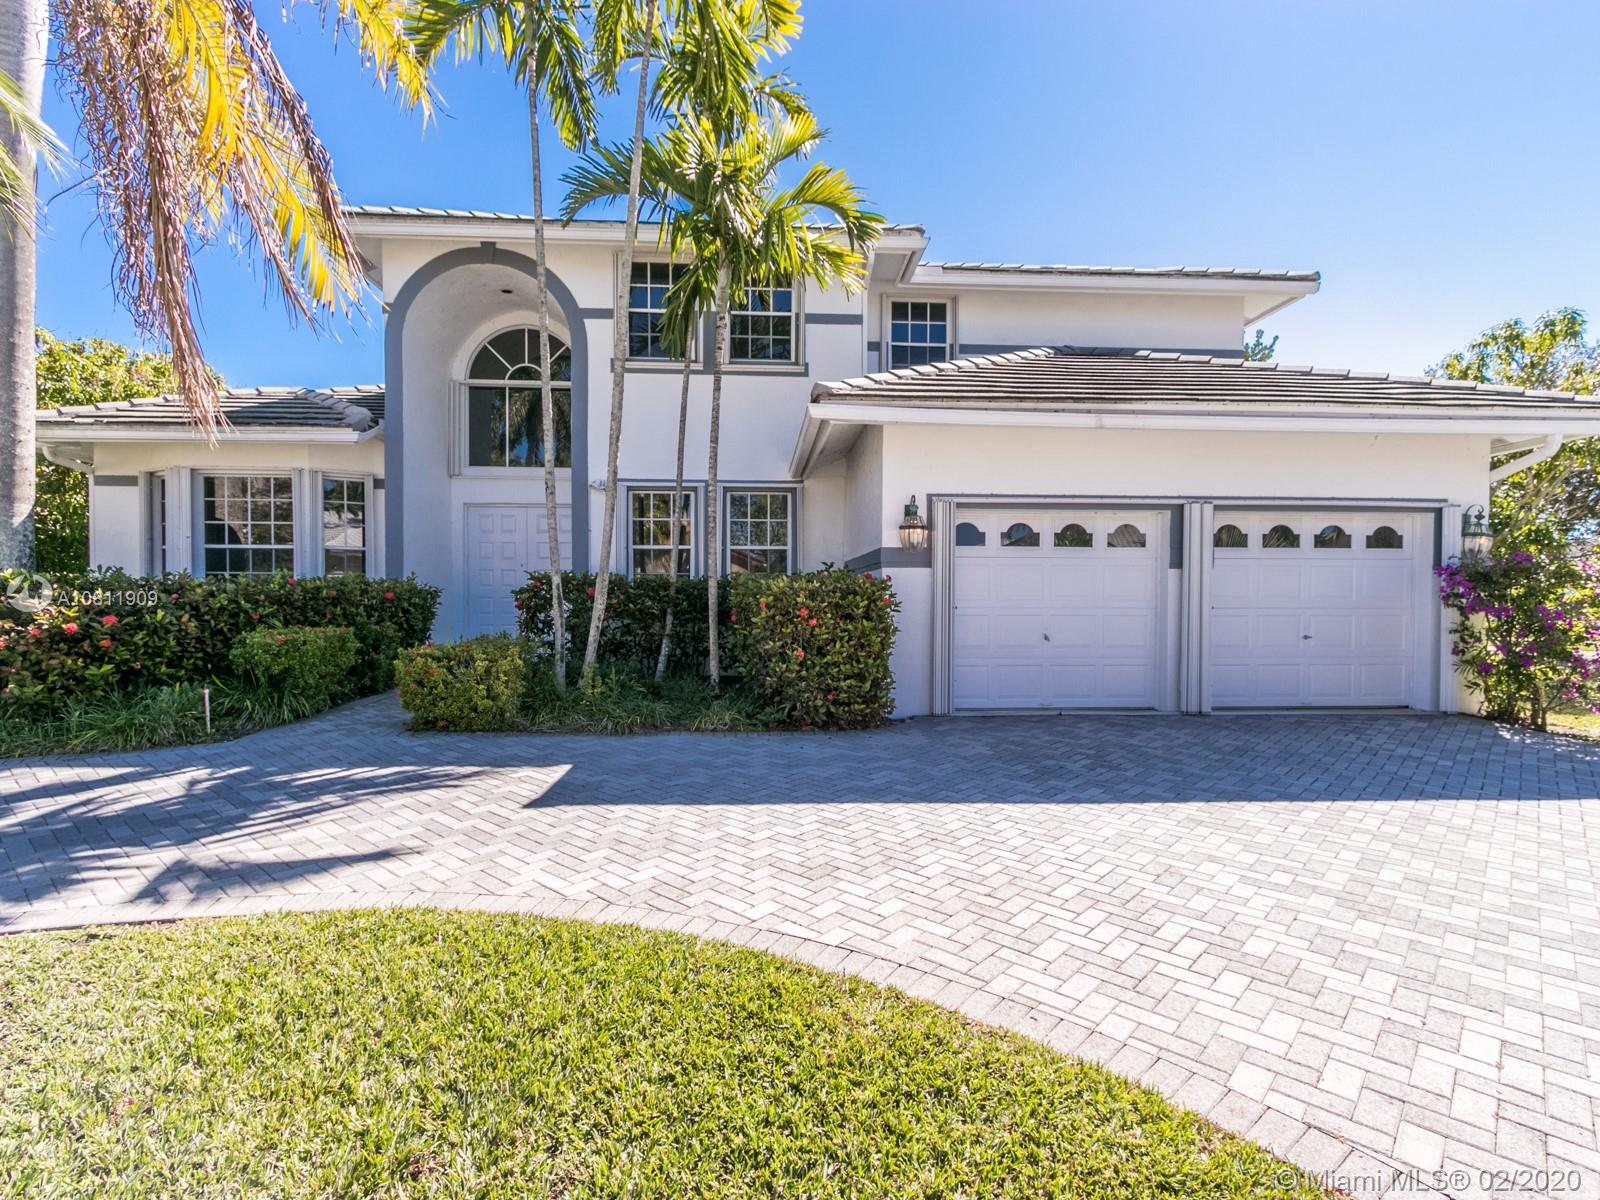 Silver Lakes features many community parks, boat launches, movies in the park nights & holiday events. Safe walking/biking/exercise paths. Excellent schools, walk to community park and pool located directly in front of community. Prestigious Gated Community of The Enclave in West Pembroke Pines. Home is 3300+sq' under air and sits on Large Corner Lot w/10k+sq'. 1st Floor Bedroom and Fully Updated Bath. Formal Entry, Formal Living and Dining Rooms. Updated Kitchen with Breakfast Area. Large Family Room with Wet Bar access. 2nd Floor: Oversized Master en Suite with Updated bath, soaking tub, standing shower and dual vanities. Large 3rd Bedroom and Loft, Updated double vanity bath with dual shower/tub. 2 AC units. Laundry room w/sink. Complete Accordian Hurricane Shutters. Partially Fenced.